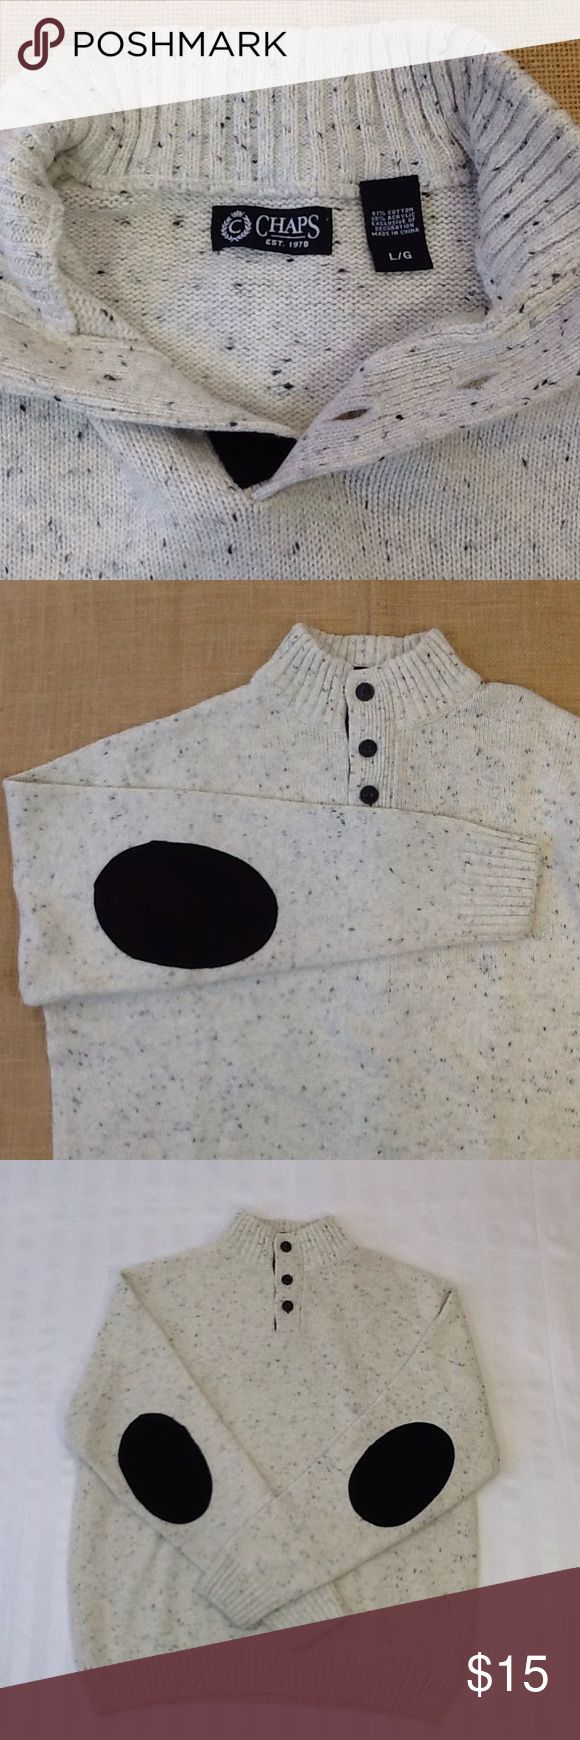 Chaps men's henley sweater Very good pre-owned condition. Cream and black heathered 61% cotton and 39% acrylic. Ribbed, standing collar and three button placket. Suede elbow patches. Chaps Sweaters Turtleneck